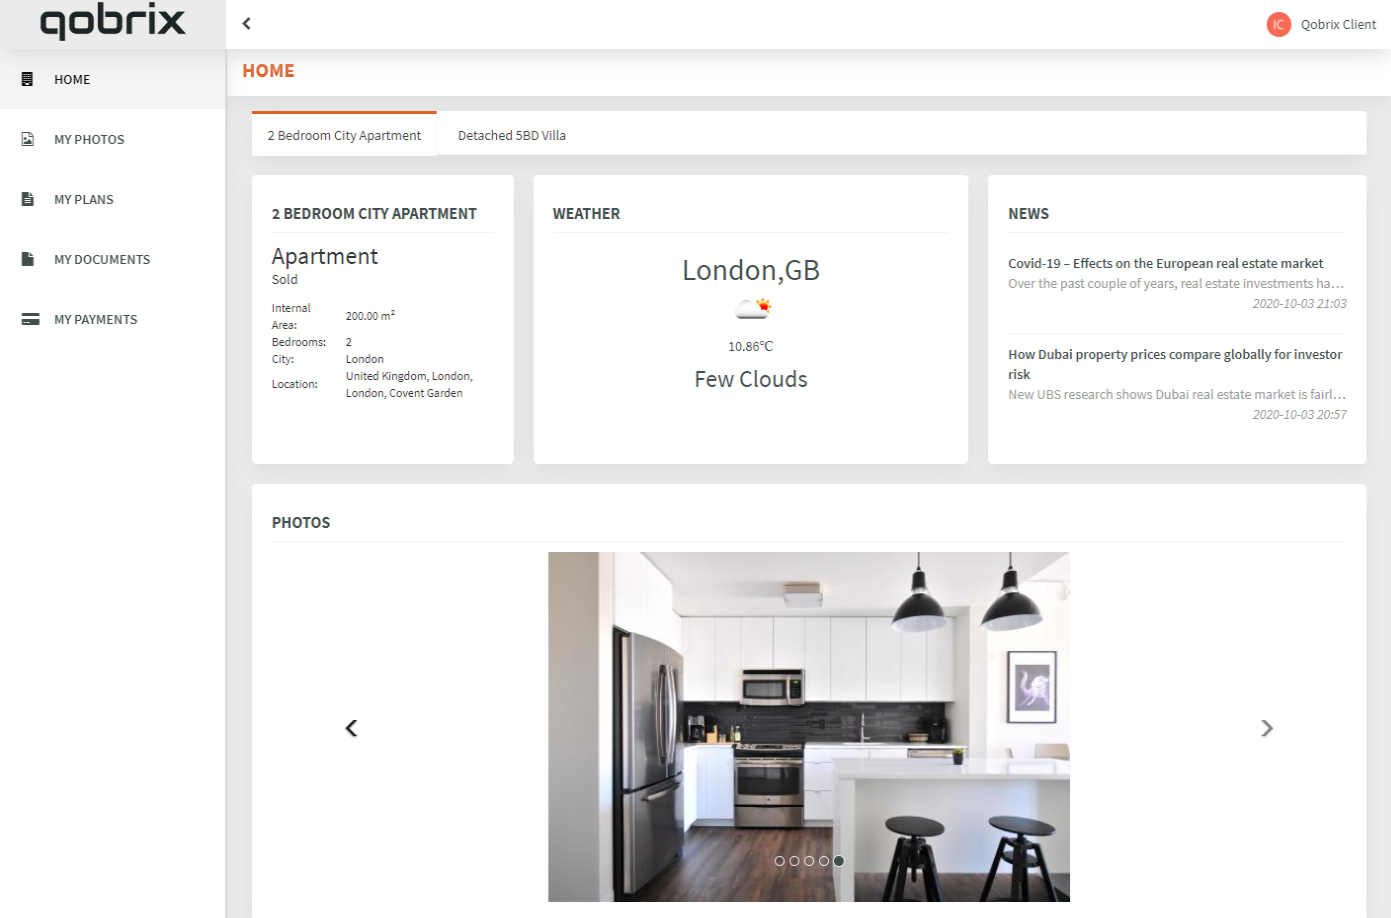 Qobrix Real Estate Client Portal Dashboard with property photos, plans and documents